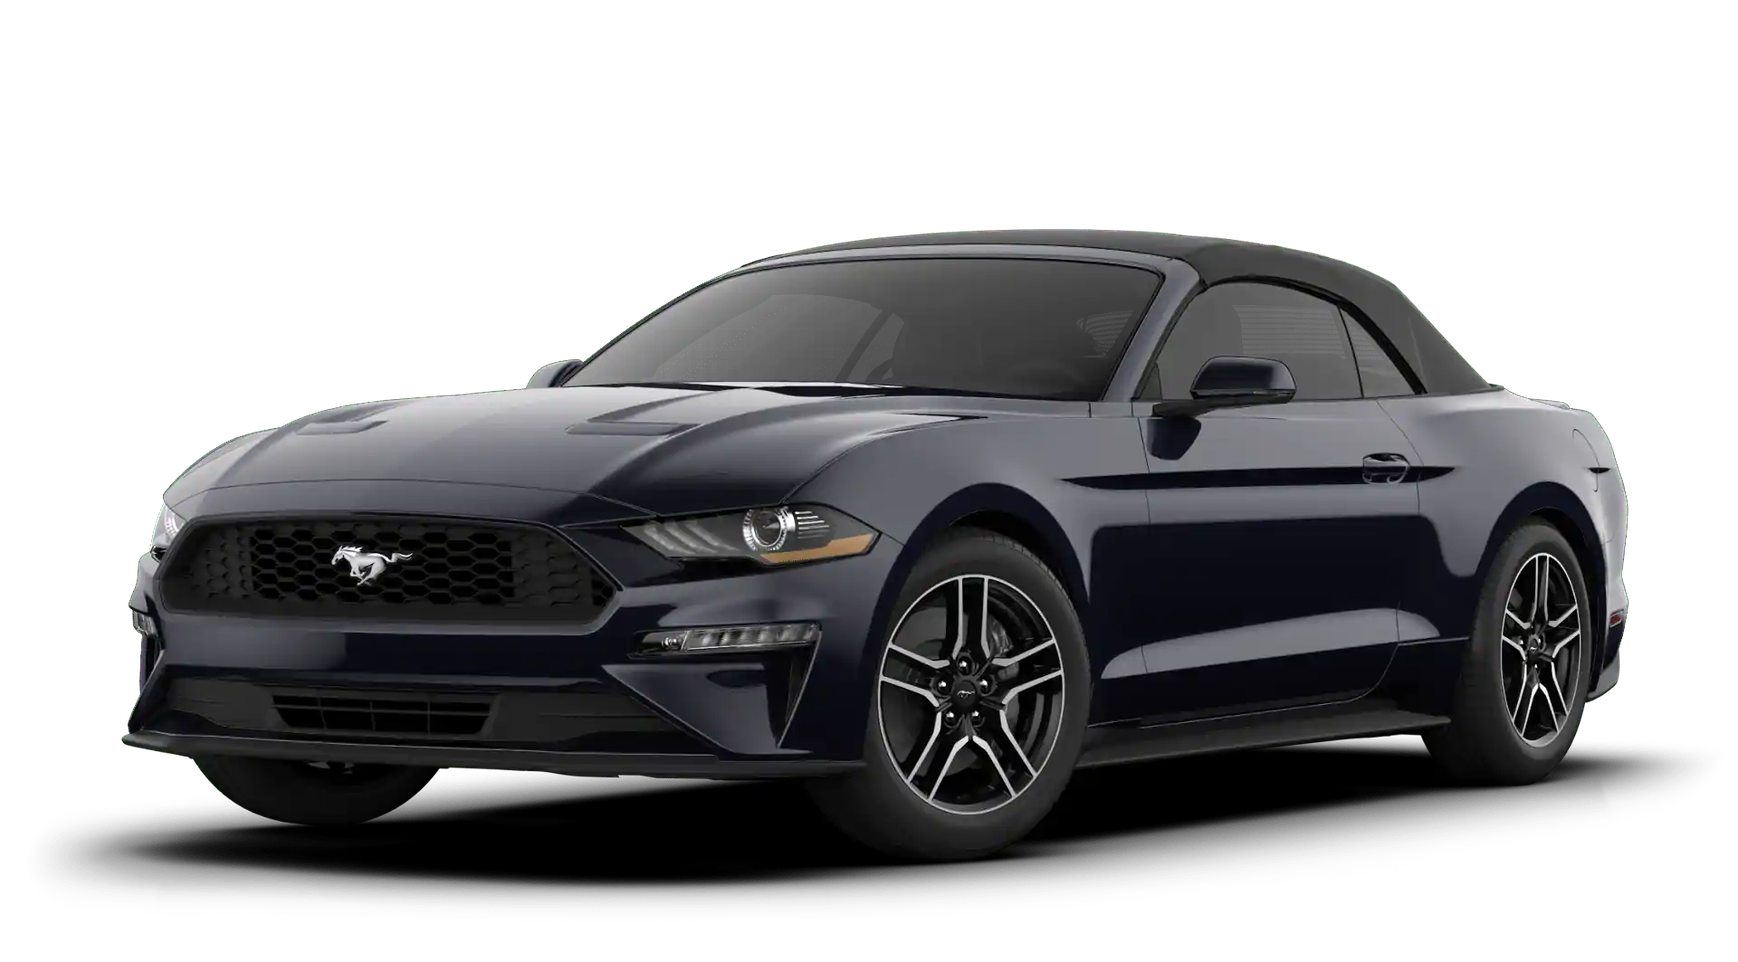 Ford Mustang 2020 EcoBoost® Premium Convertible 2.3 L4 EcoBoost® High Performance Бензин 6 ст. МКПП Задний